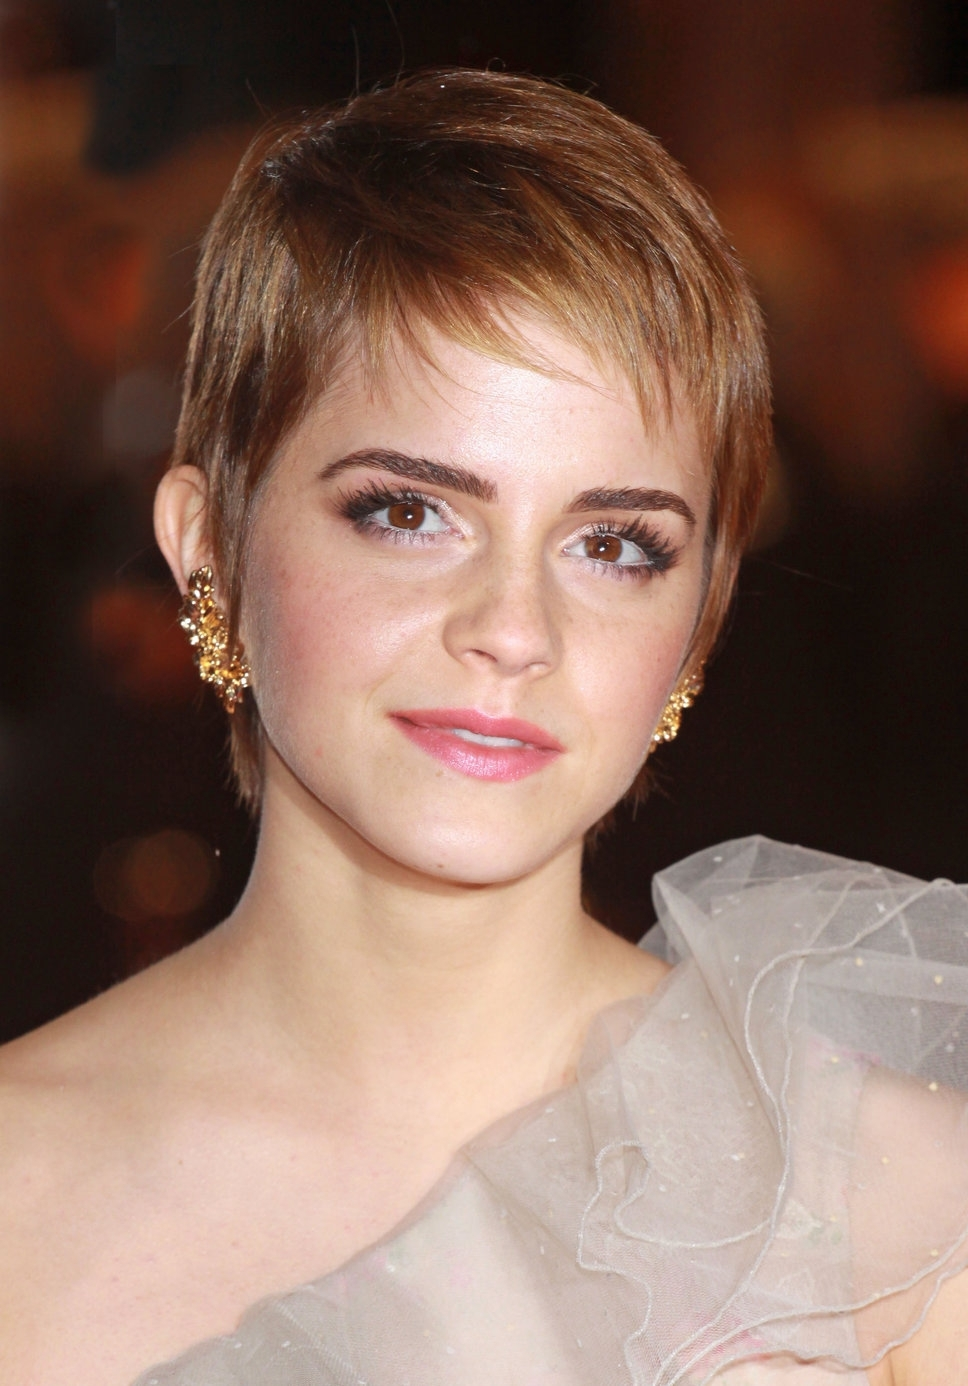 Emma Watson Soft Pixie Hair Cut With Wispy Bangs – Women Hairstyles Within Latest Soft Pixie Hairstyles (View 8 of 15)